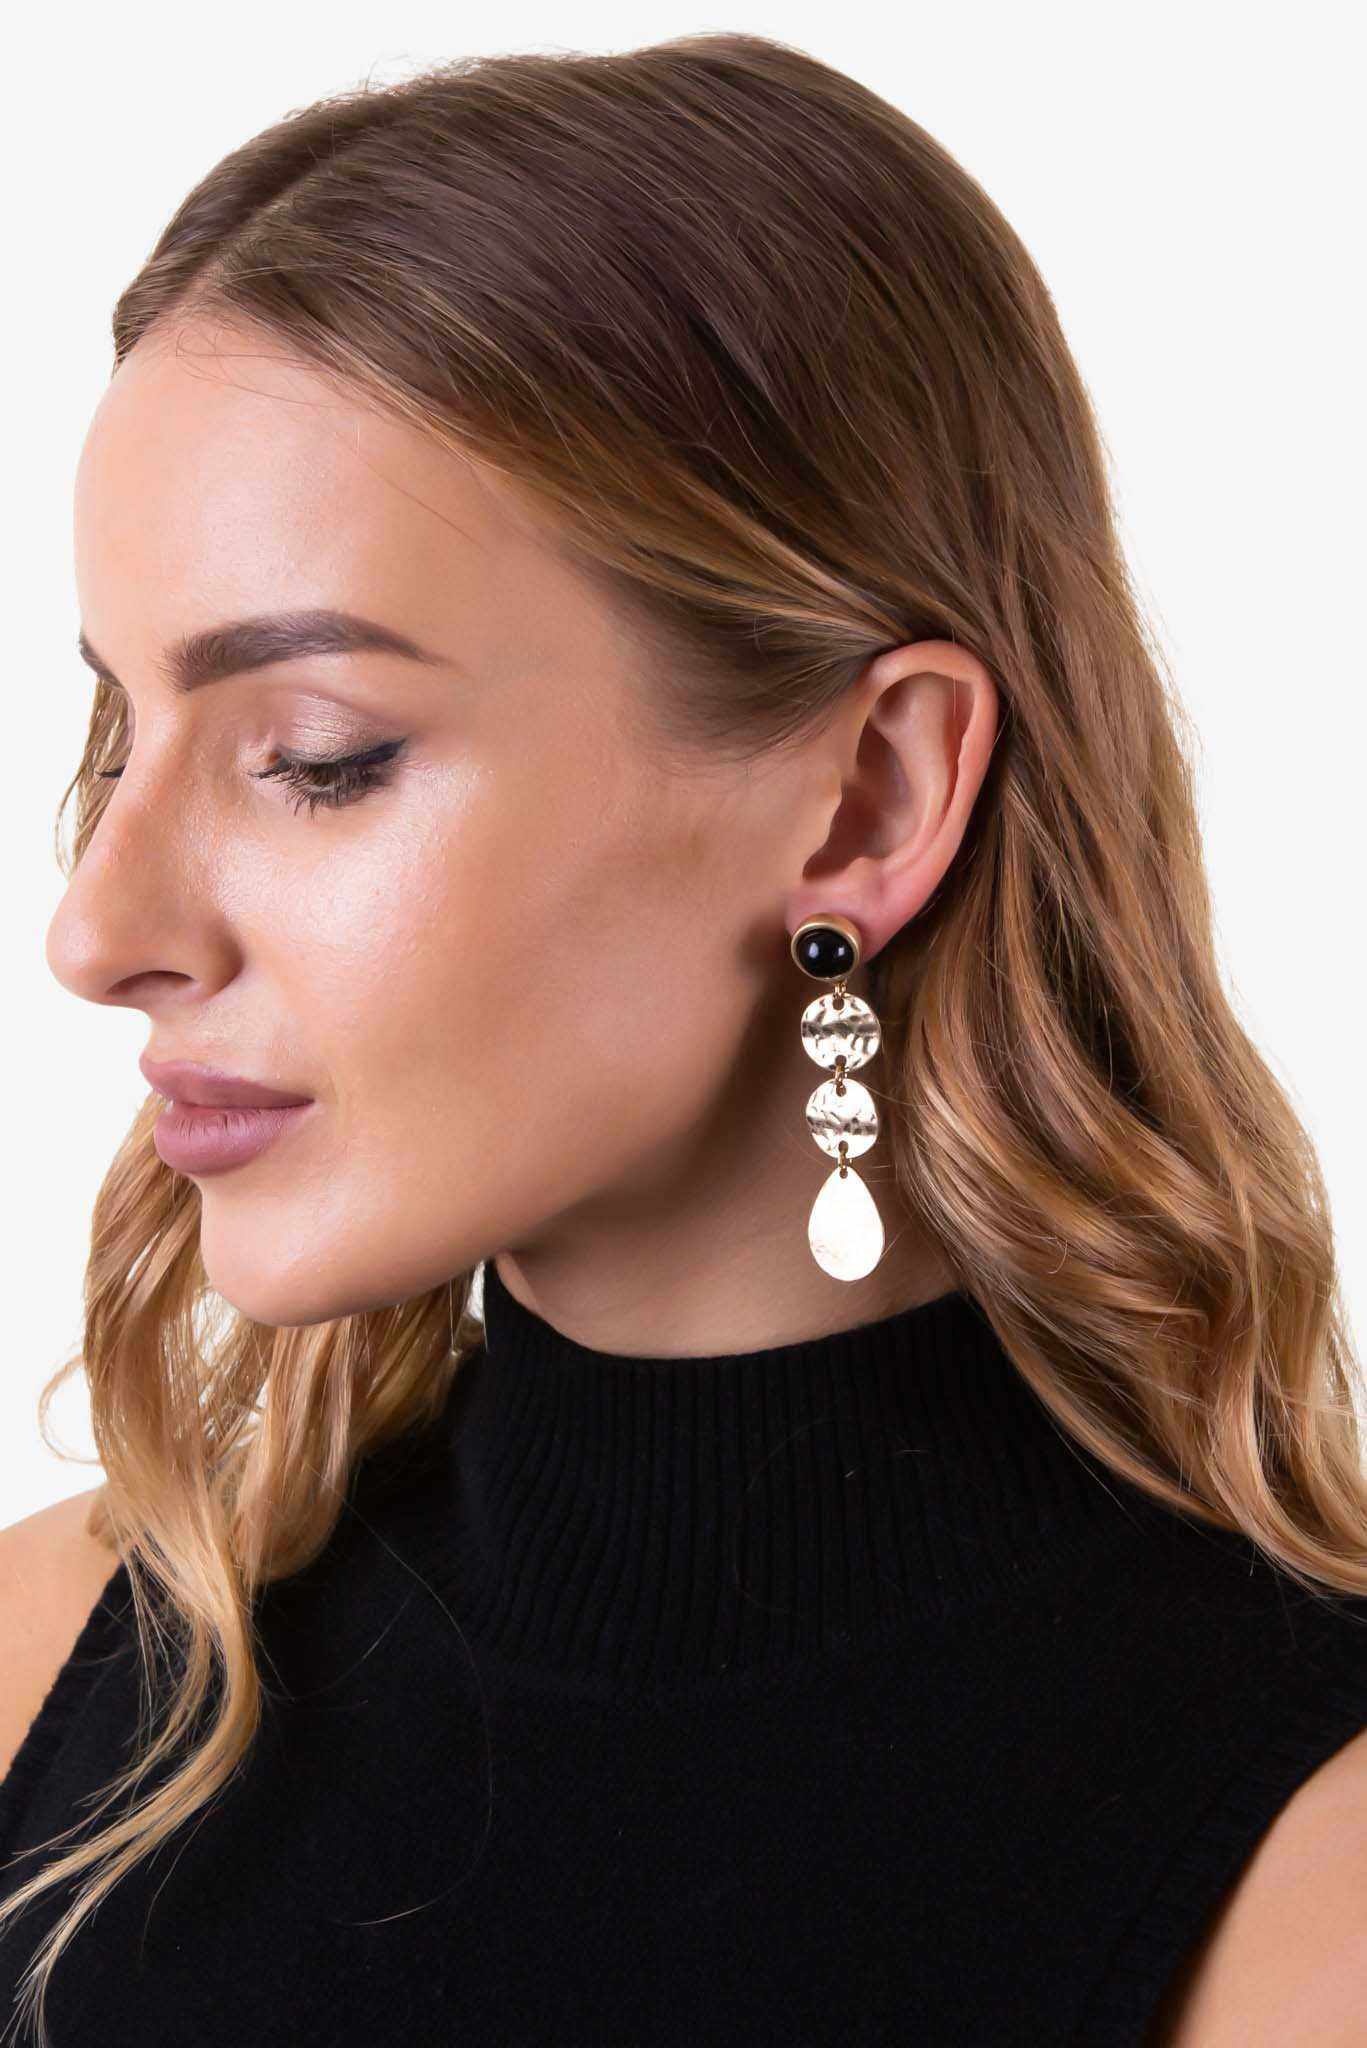 Tiered Earring with Black Stud | Raw Orange